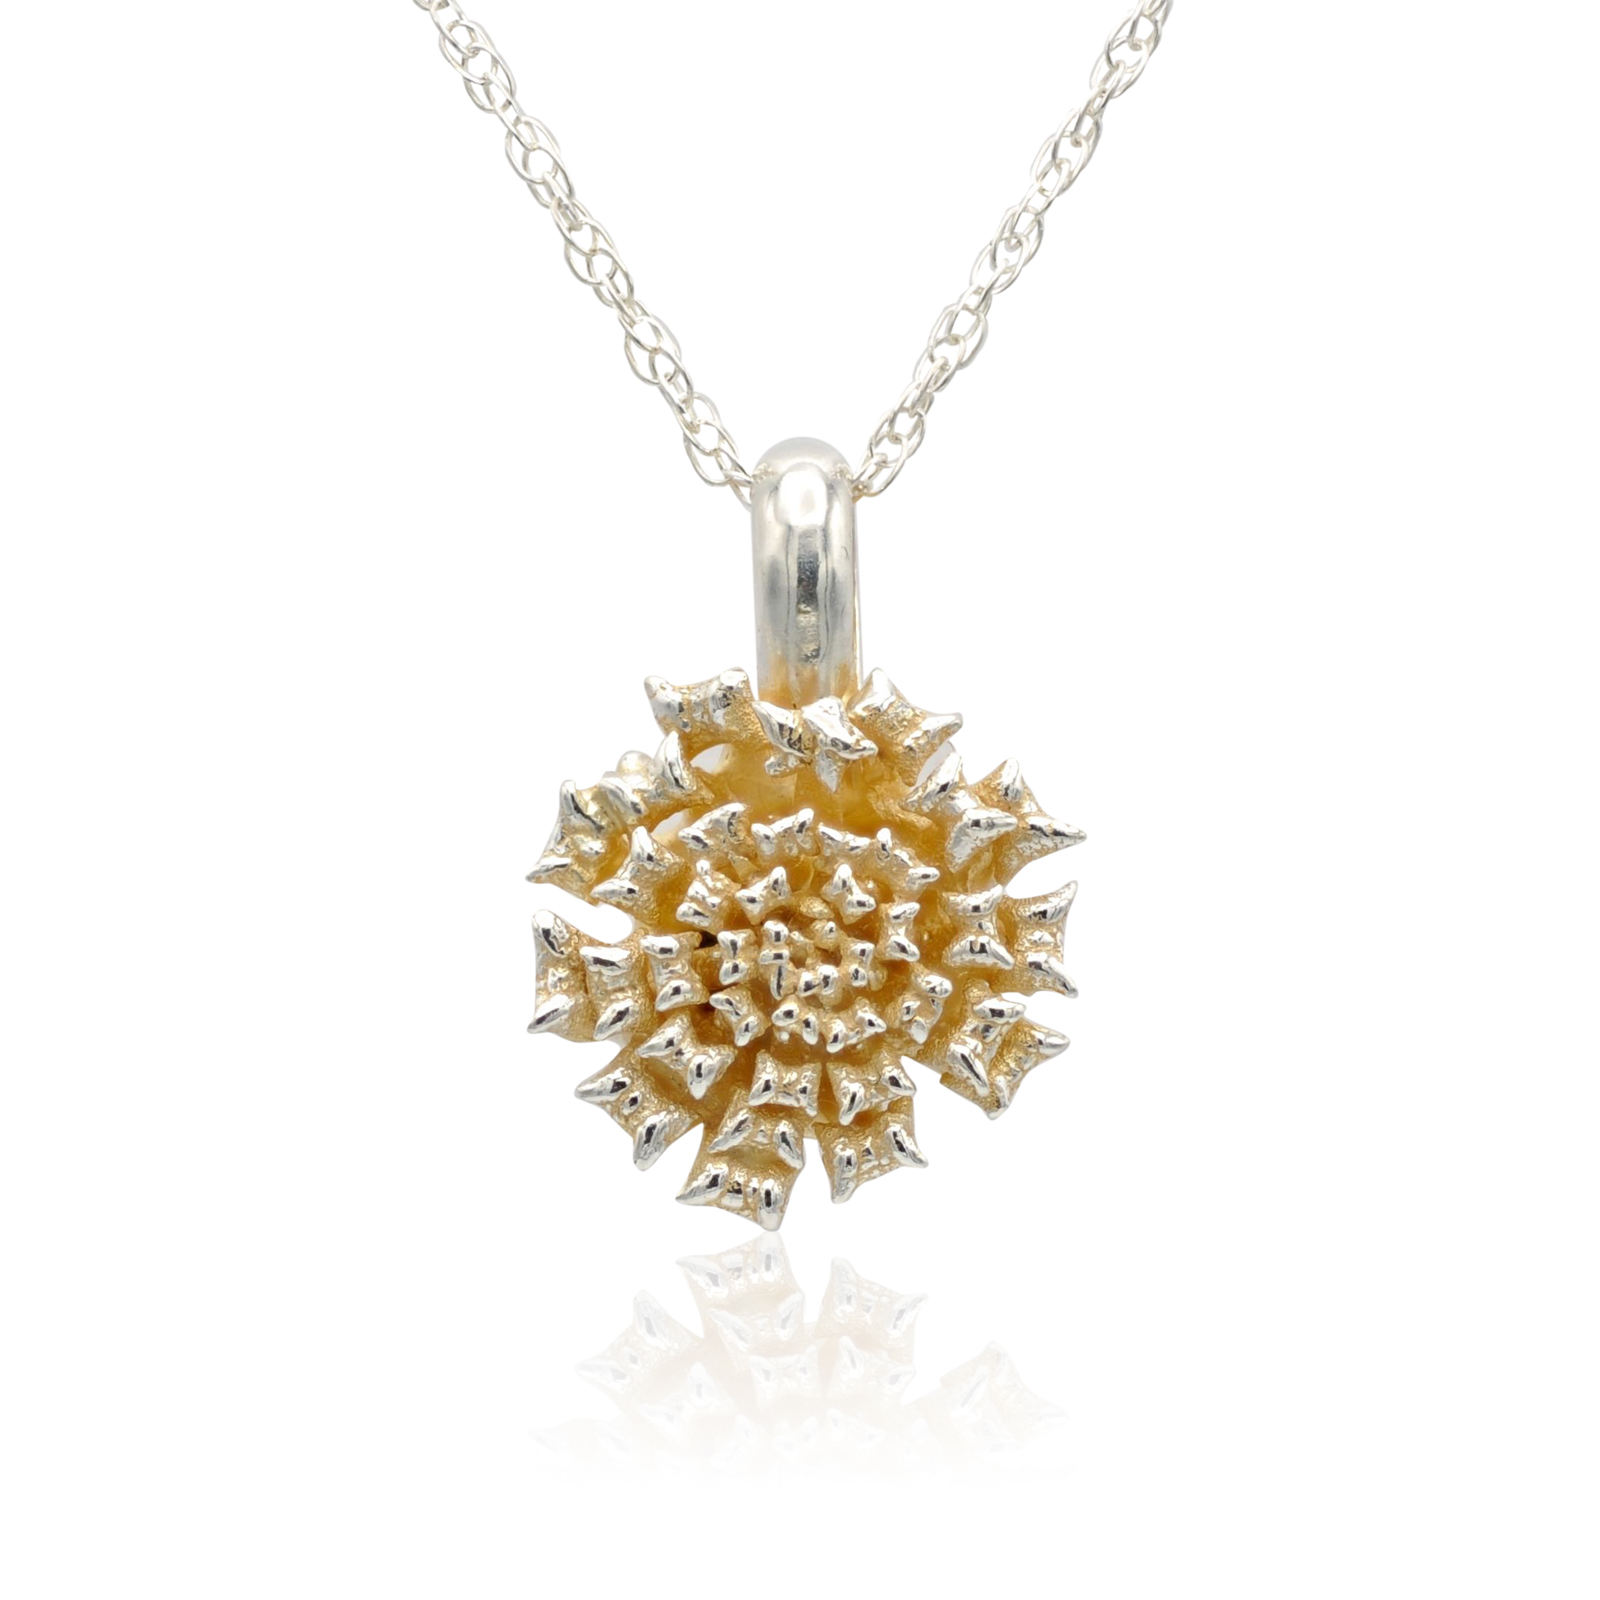 lantana flower pendant, sterling silver with 14k gold accents.jpg